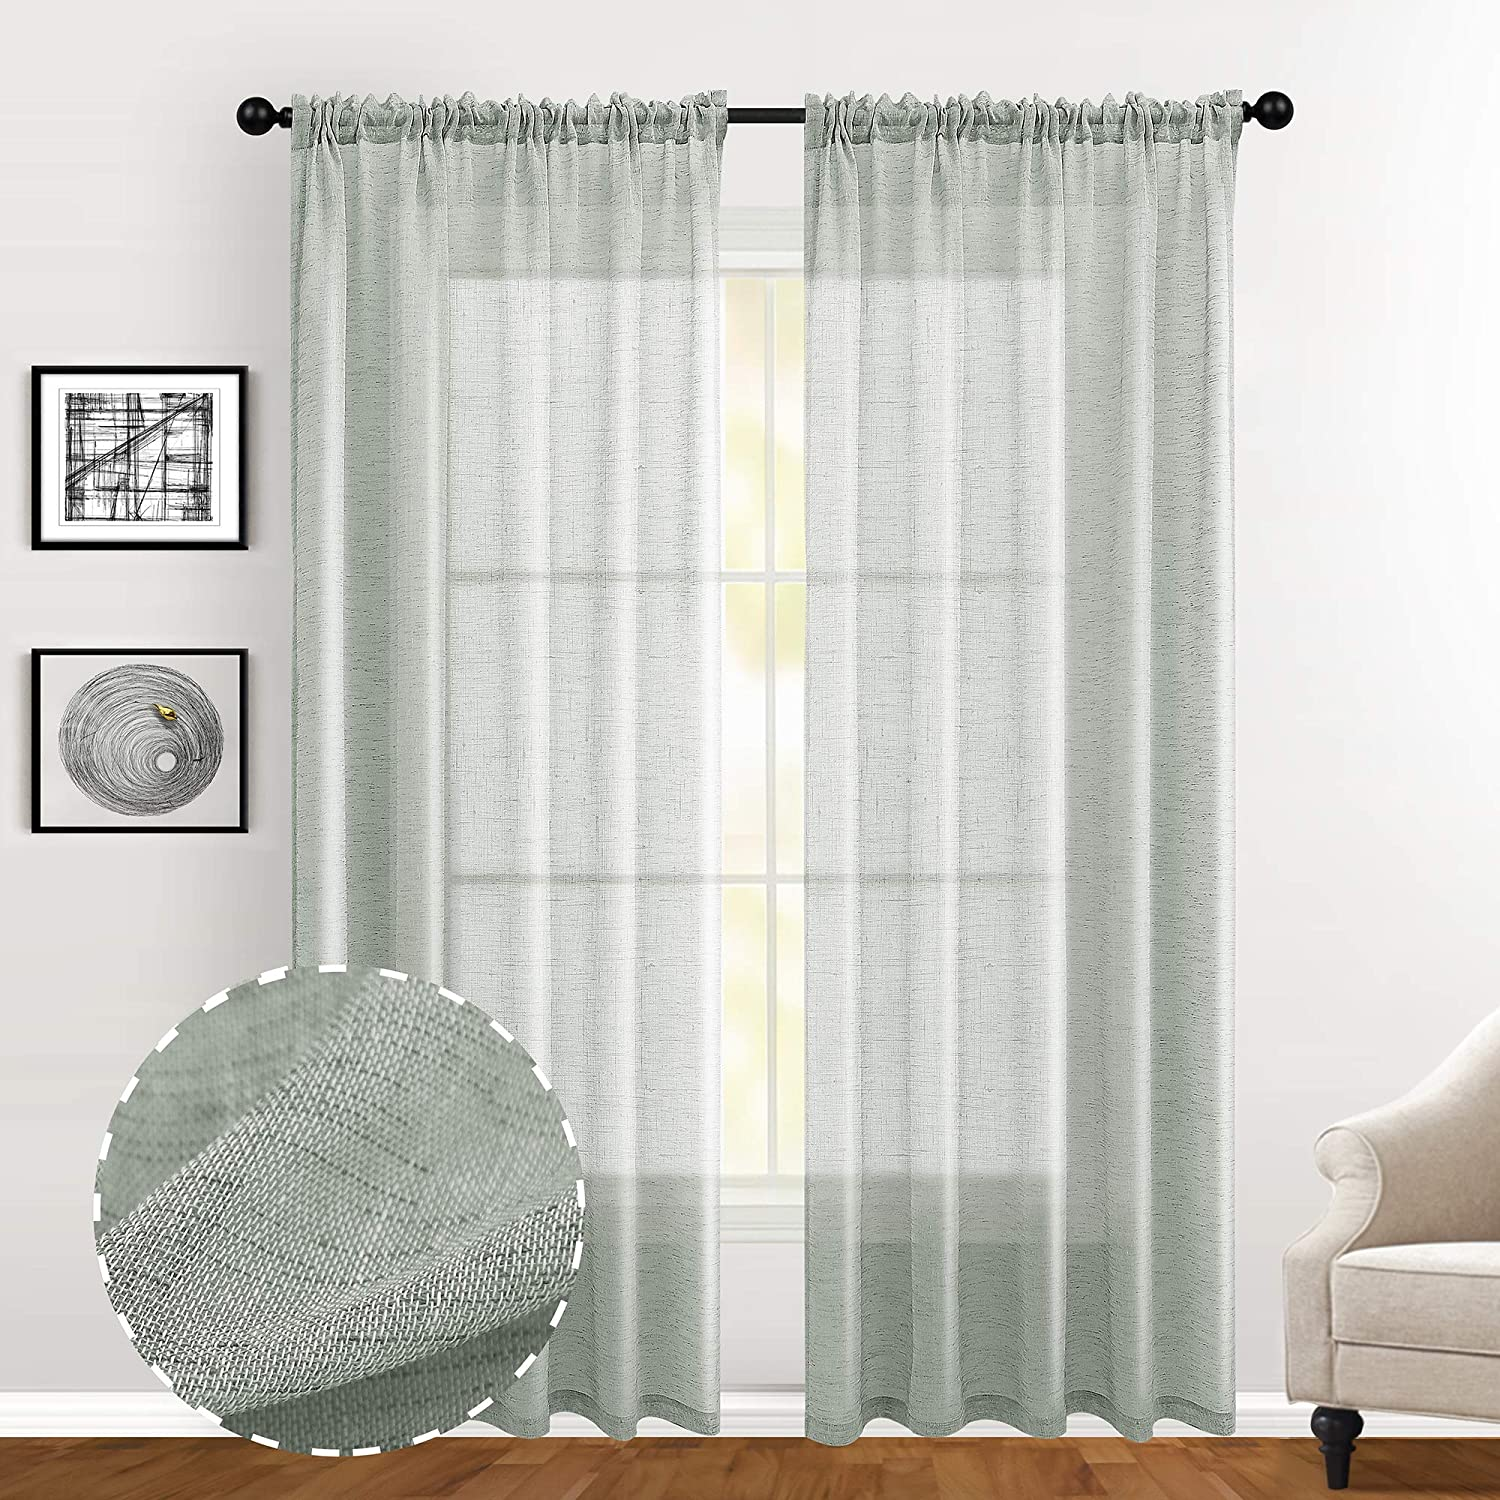 Guken Grey Faux Linen Textured Curtains for Bedroom 108 inches Long Rod Pocket Semi Sheer Curtains for Living Room Light Reducing Window Treatments Set of 2 Panels